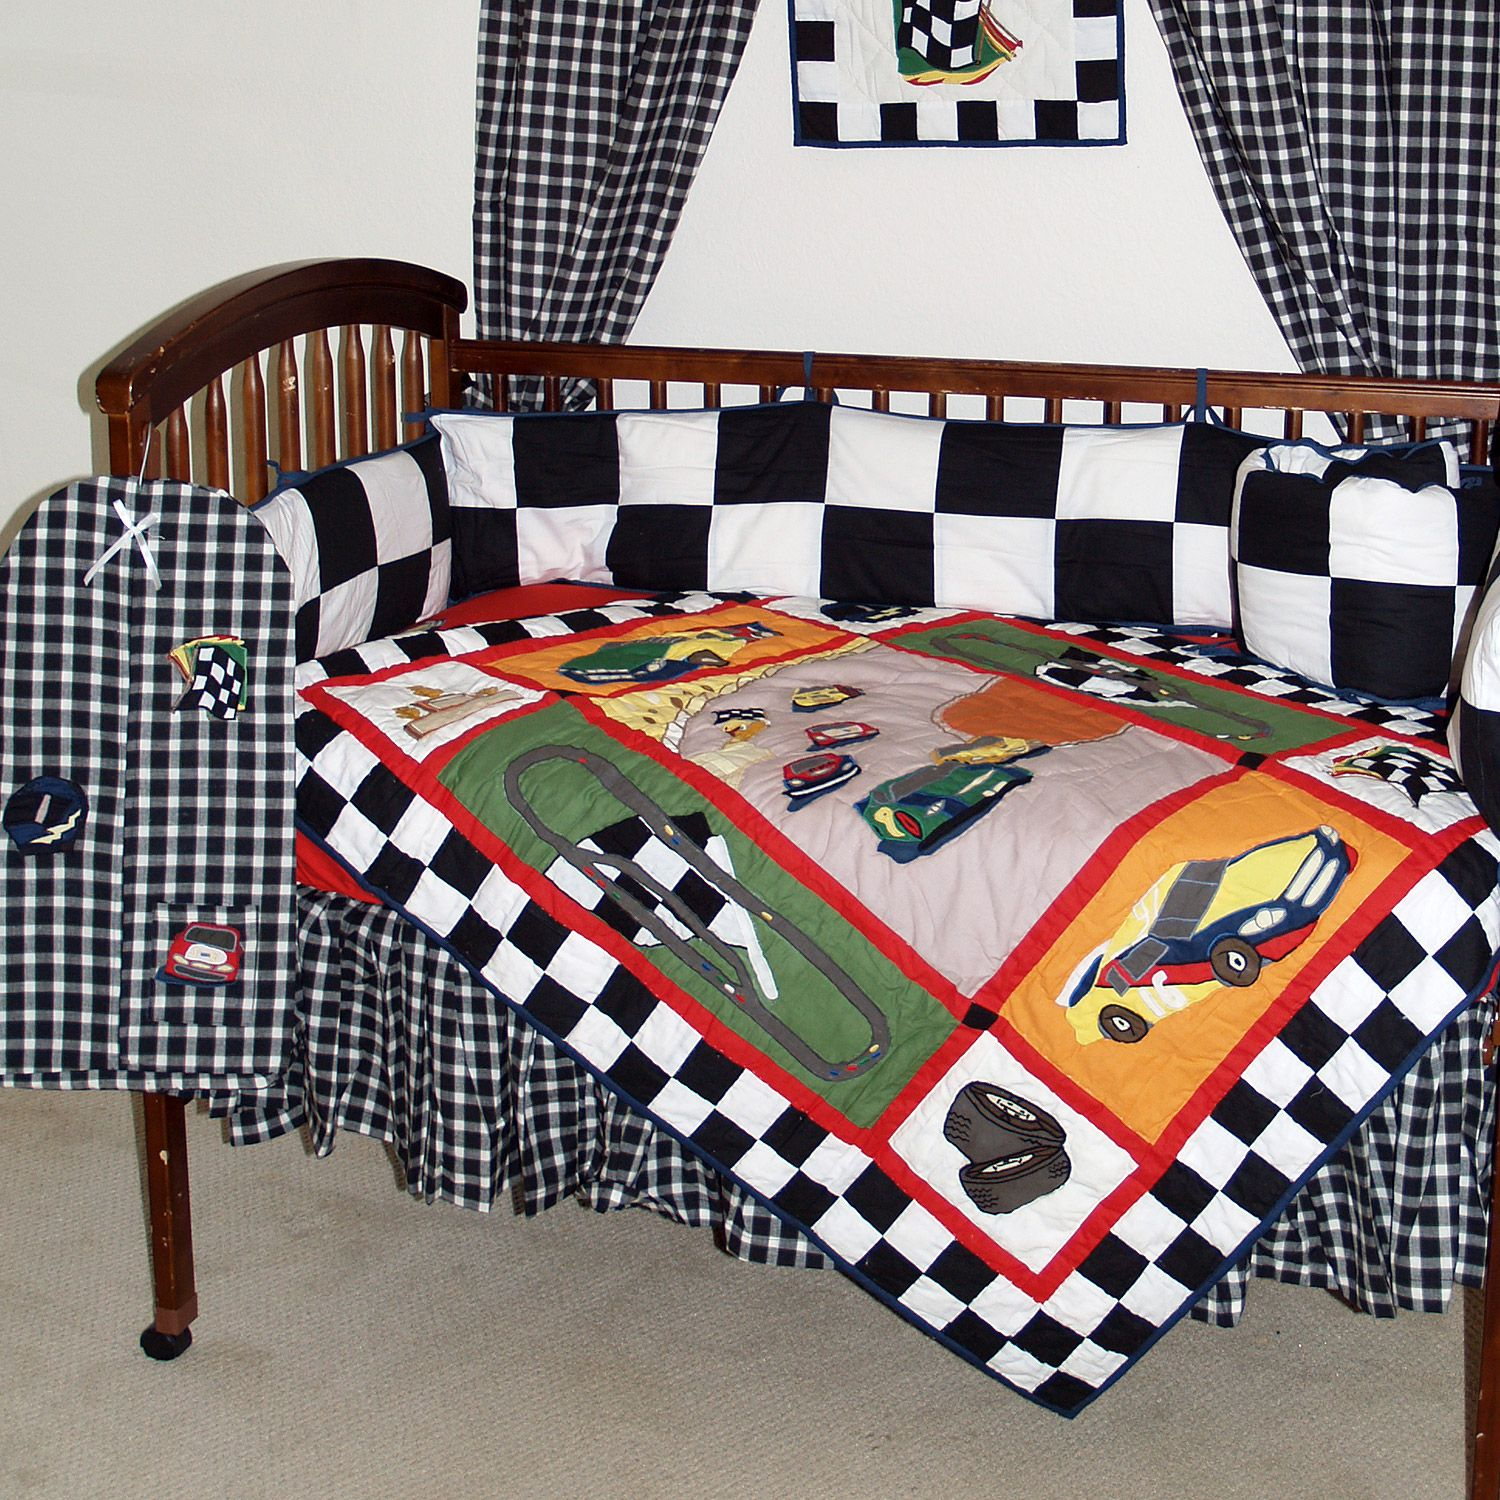 Racecar Black White And Red Race Car 6 Piece Crib Set